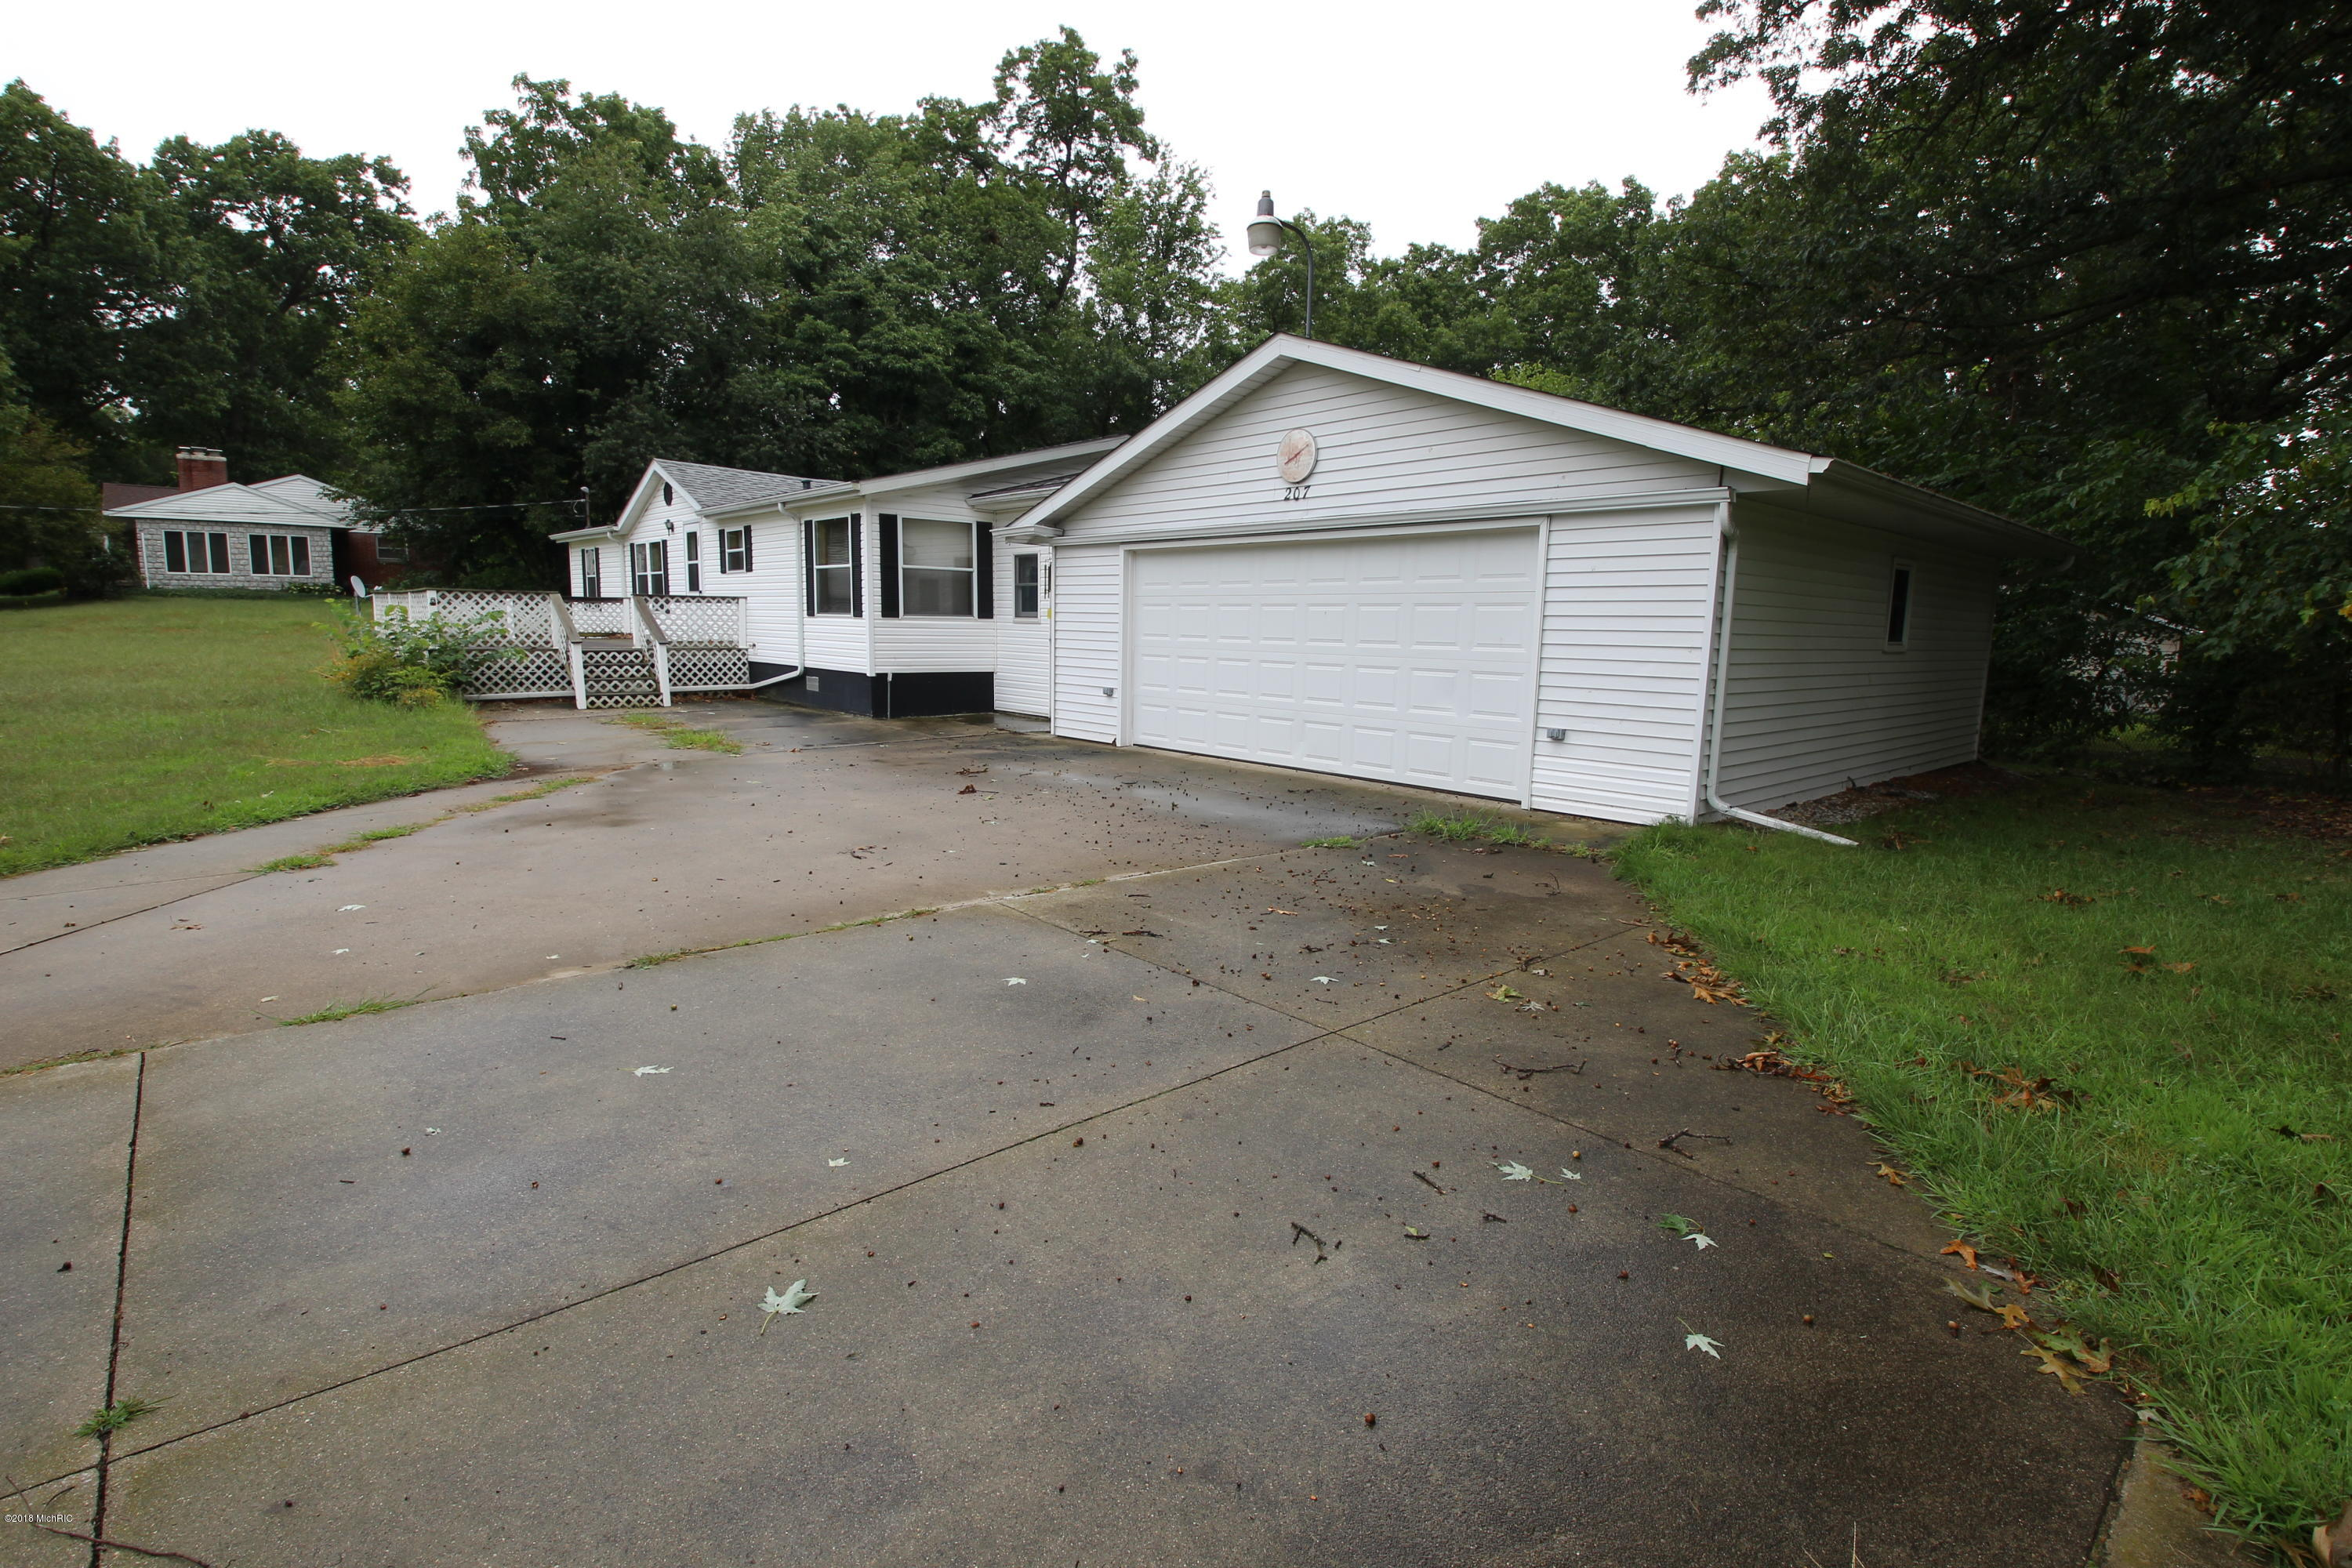 Photo for 207 Pine St Street, Decatur, MI 49045 (MLS # 18042817)